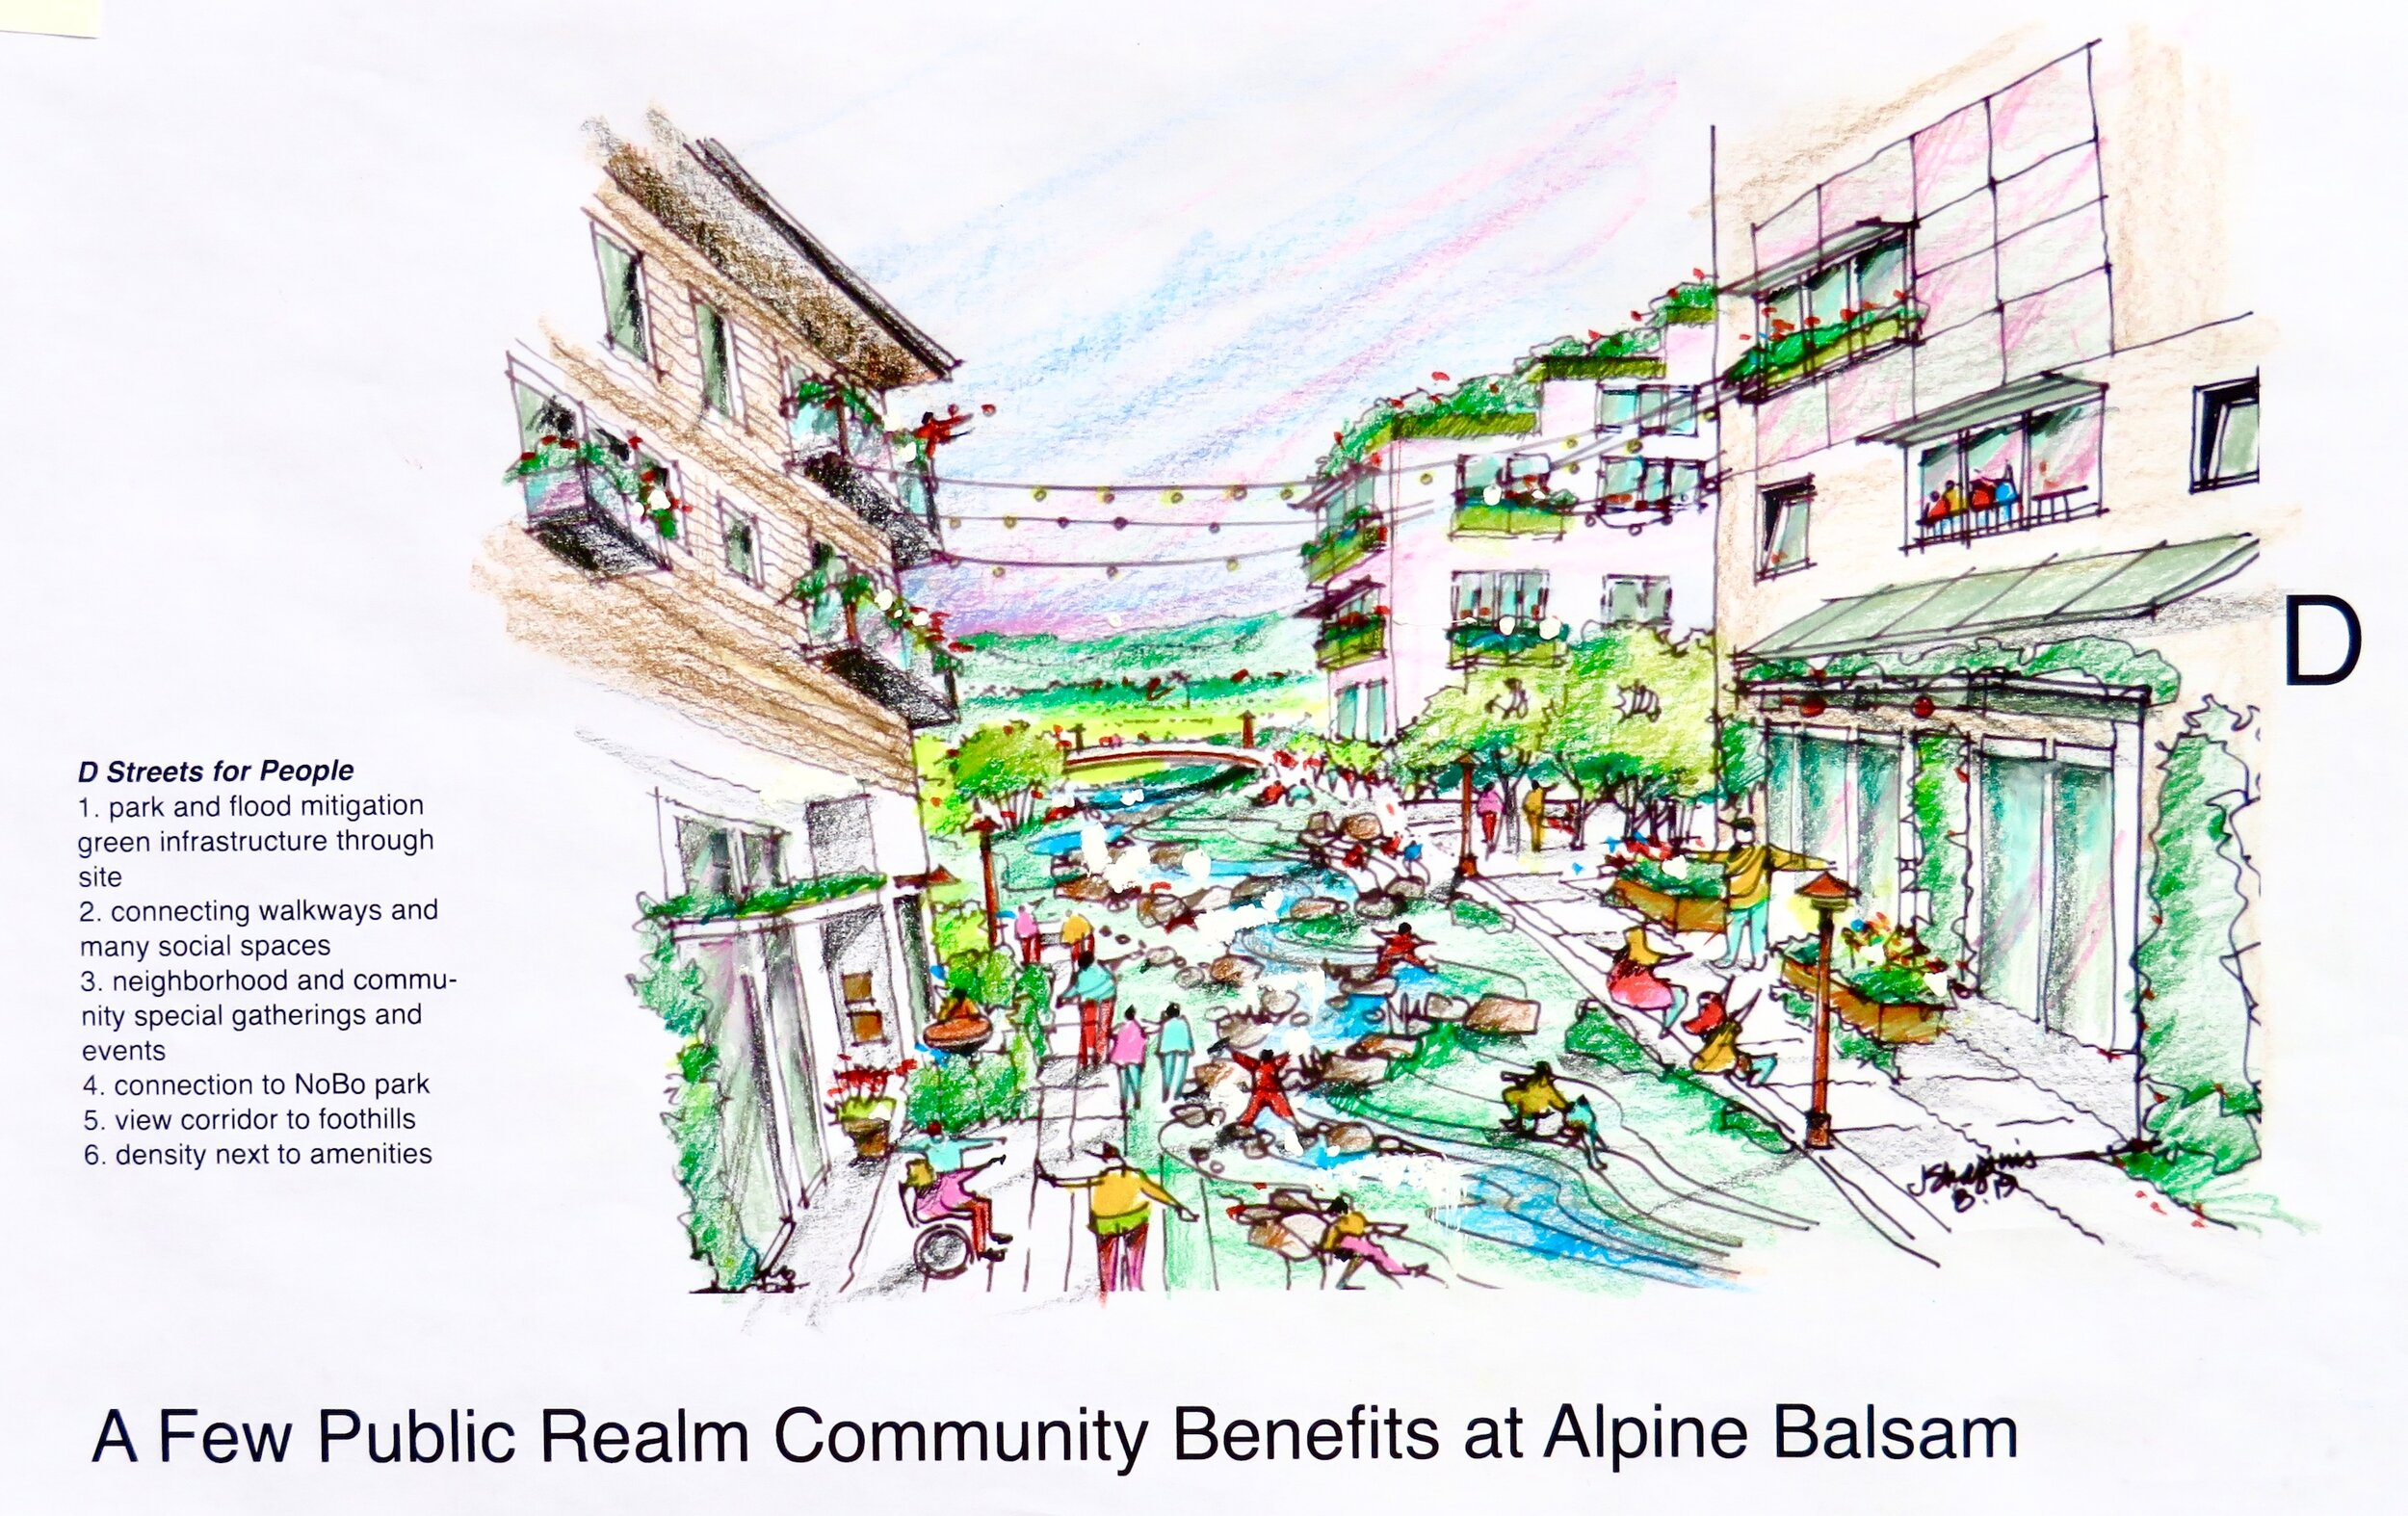 Thanks to Jerry Shapins for this lovely envisioning of the future at Alpine Balsam: A view of potential housing and public spaces looking west into North Boulder Park with all development less than the 55' Boulder height limit but that provides significant housing and a good return on taxpayers' investment. By offering compact, mostly for sale, permanently affordable housing to a broad spectrum of families and local workers who are now in-commuting, we could take cars off the roads while creating a vital, walkable Alpine Balsam area that current neighbors can enjoy too.